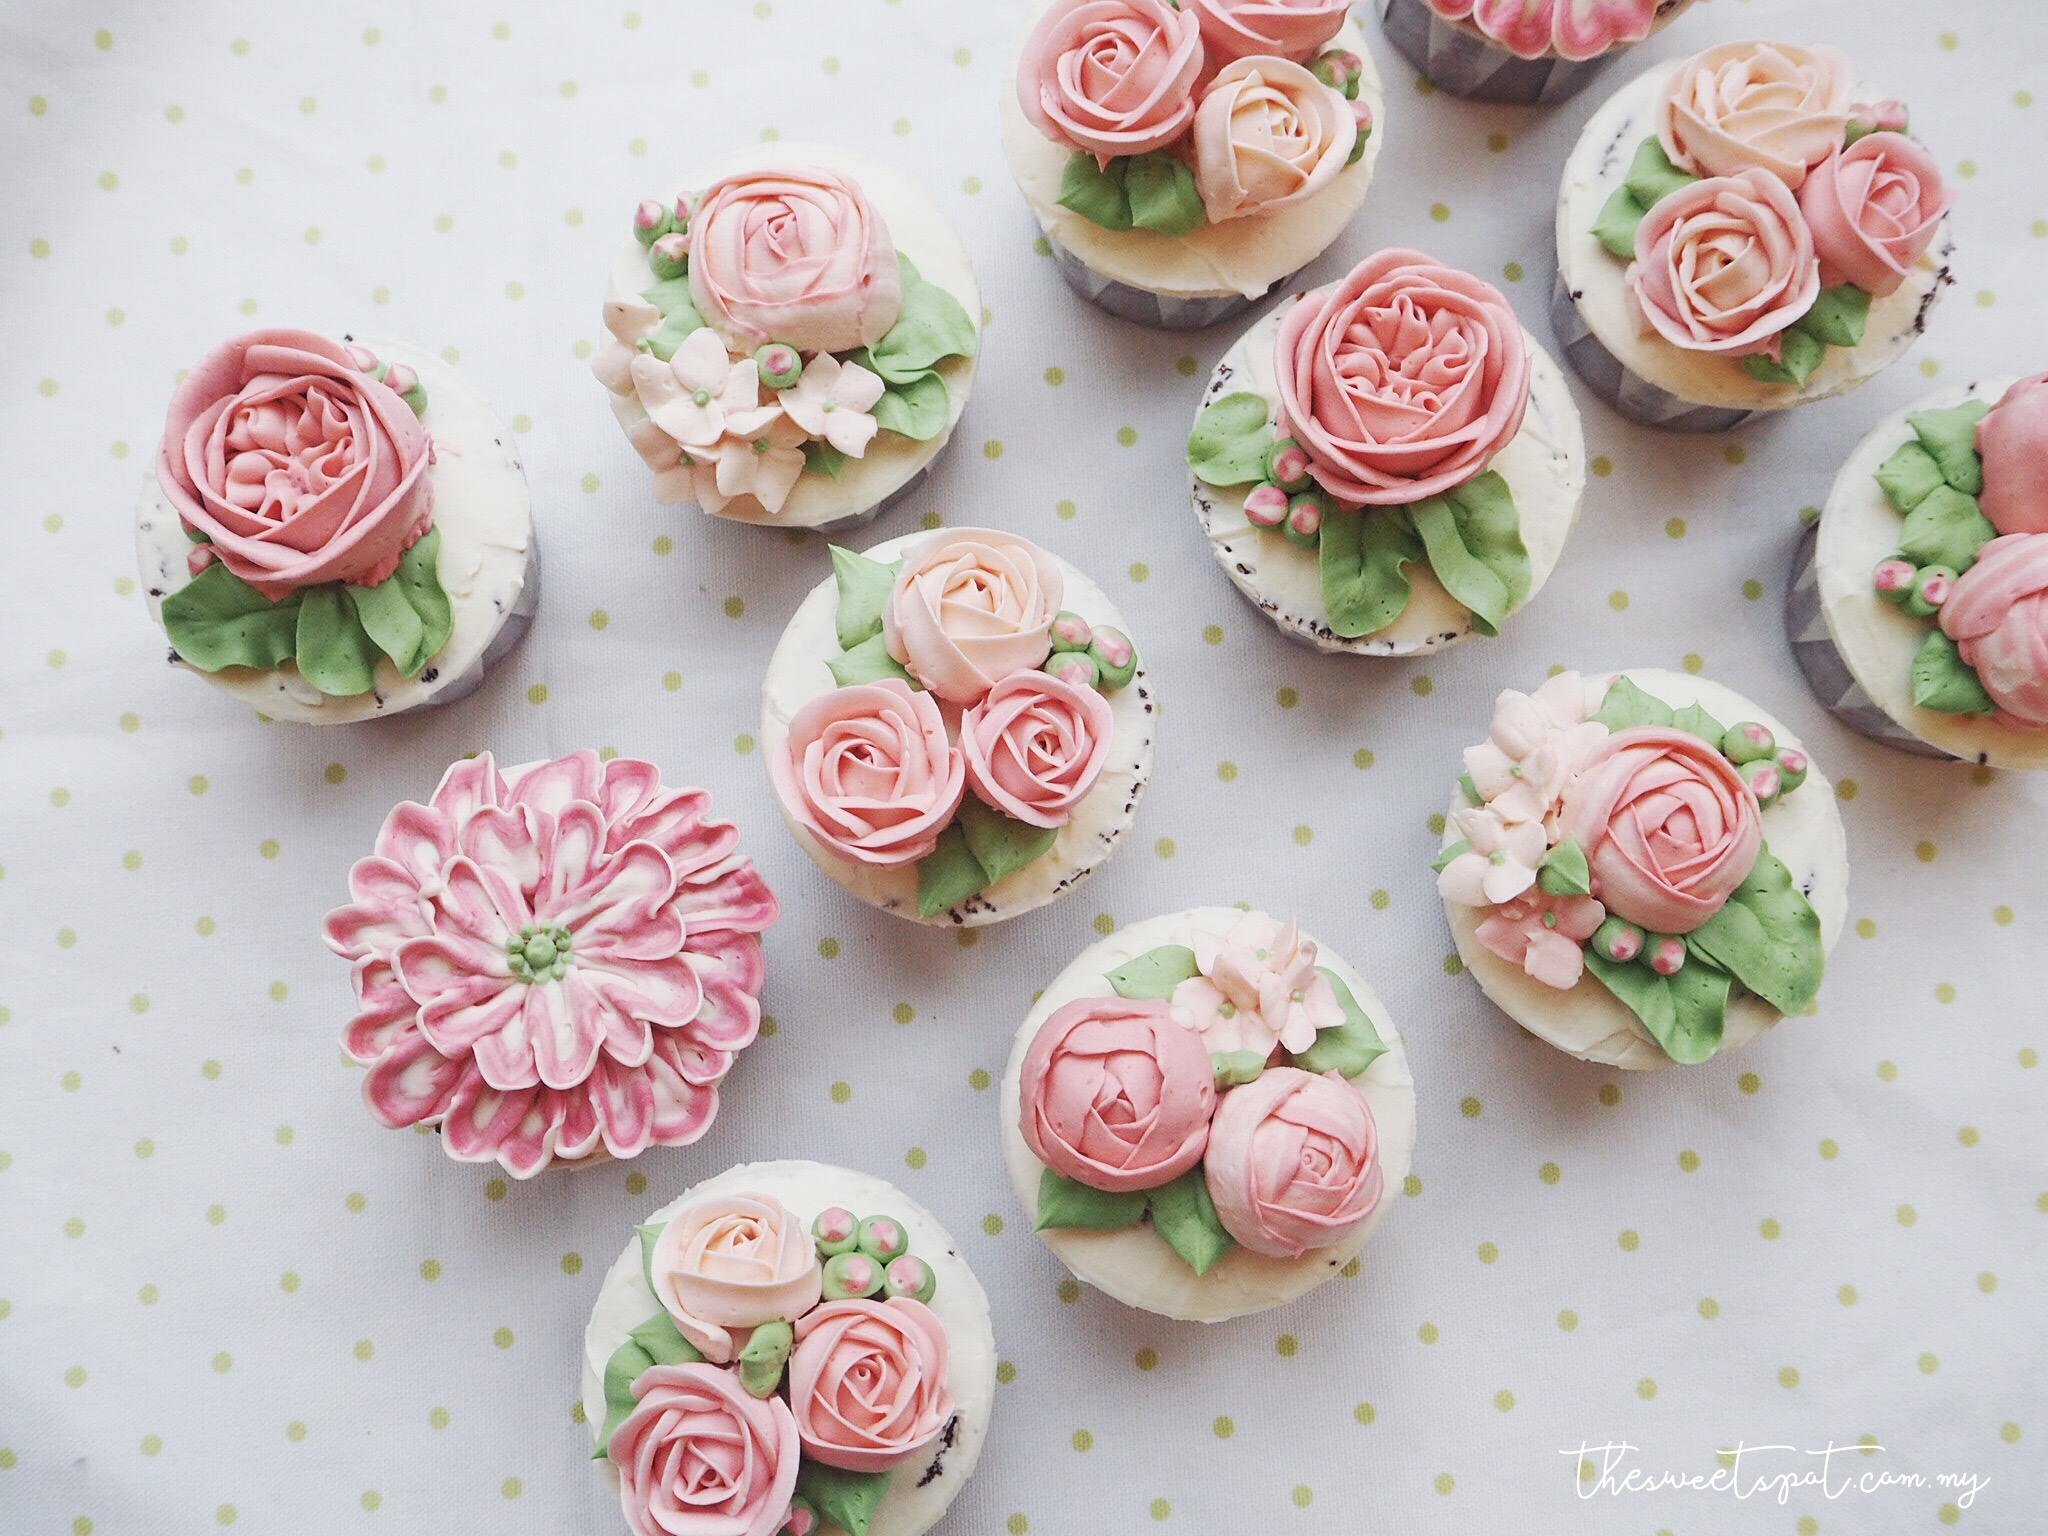 Bespoke Buttercream Flower Cakes – The Sweet Spot